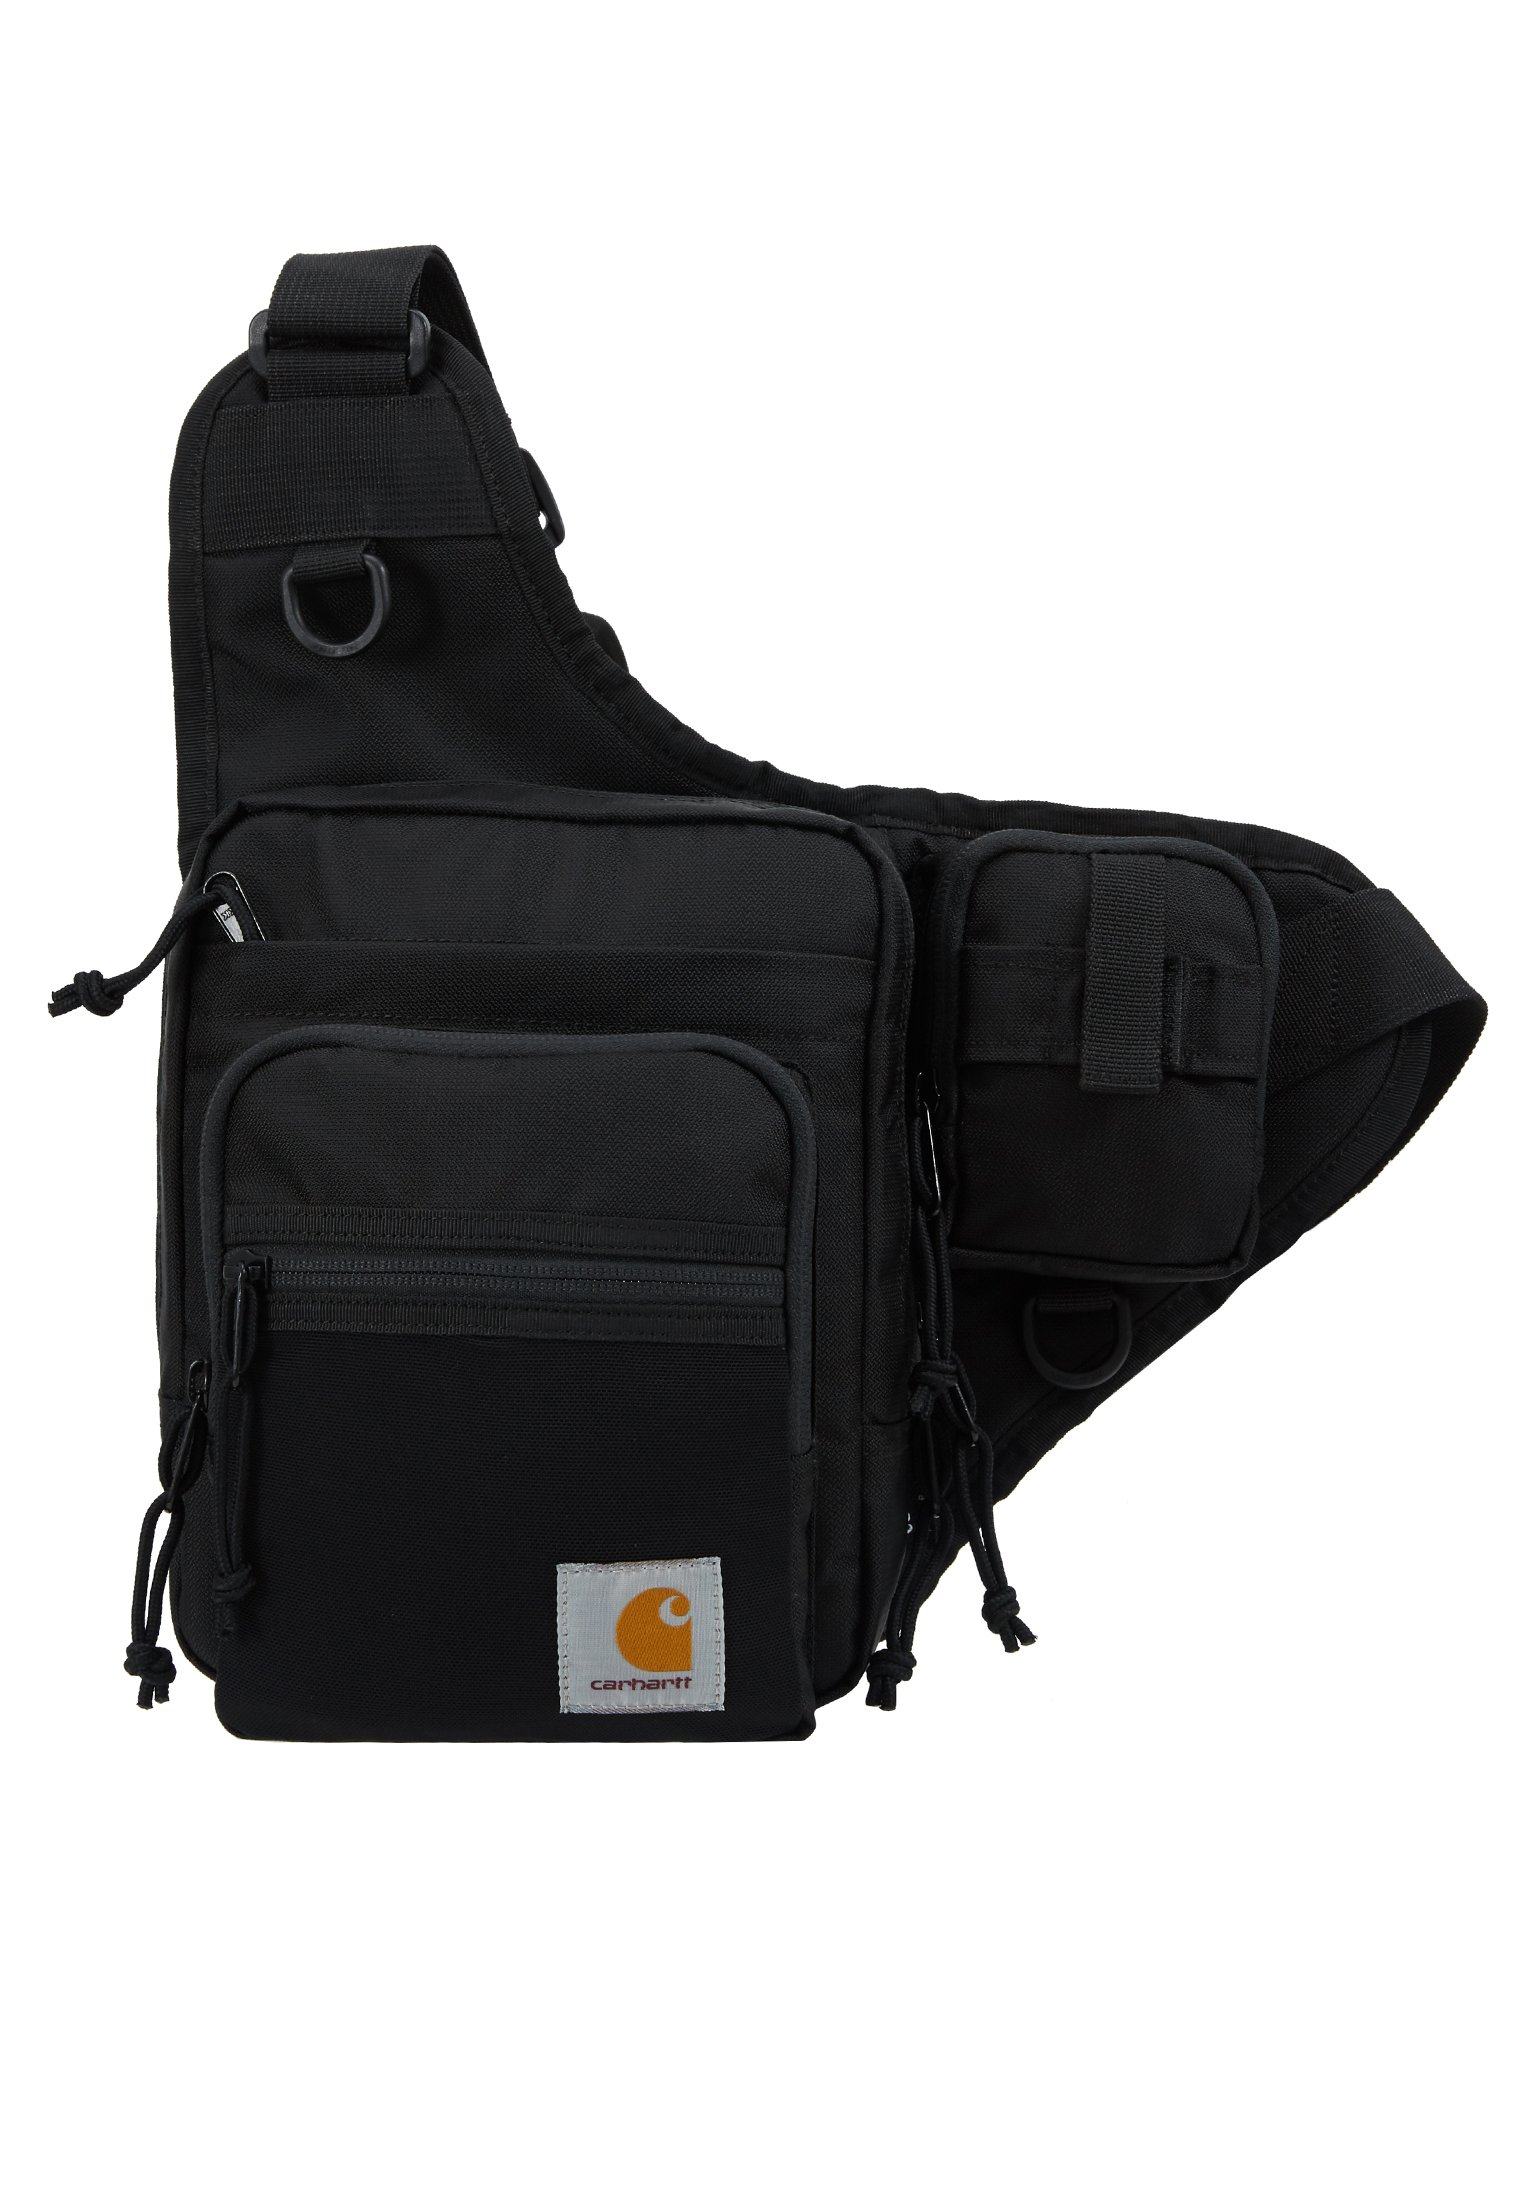 Carhartt Wip Delta Shoulder Bag - Sac Banane Black